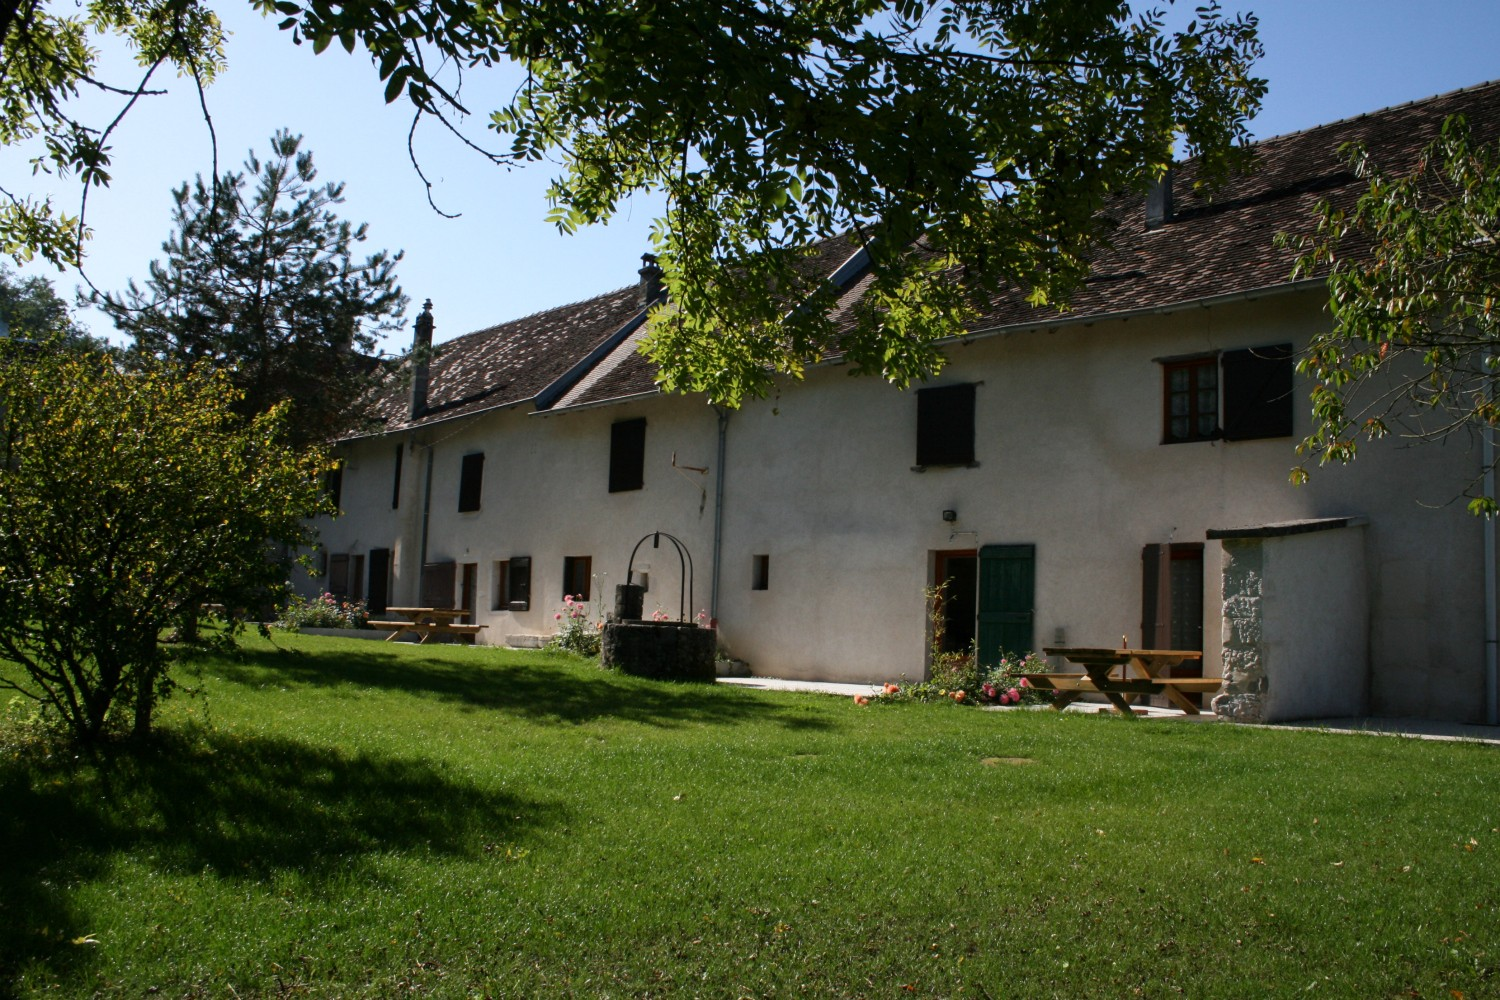 Self-catering overnight gites